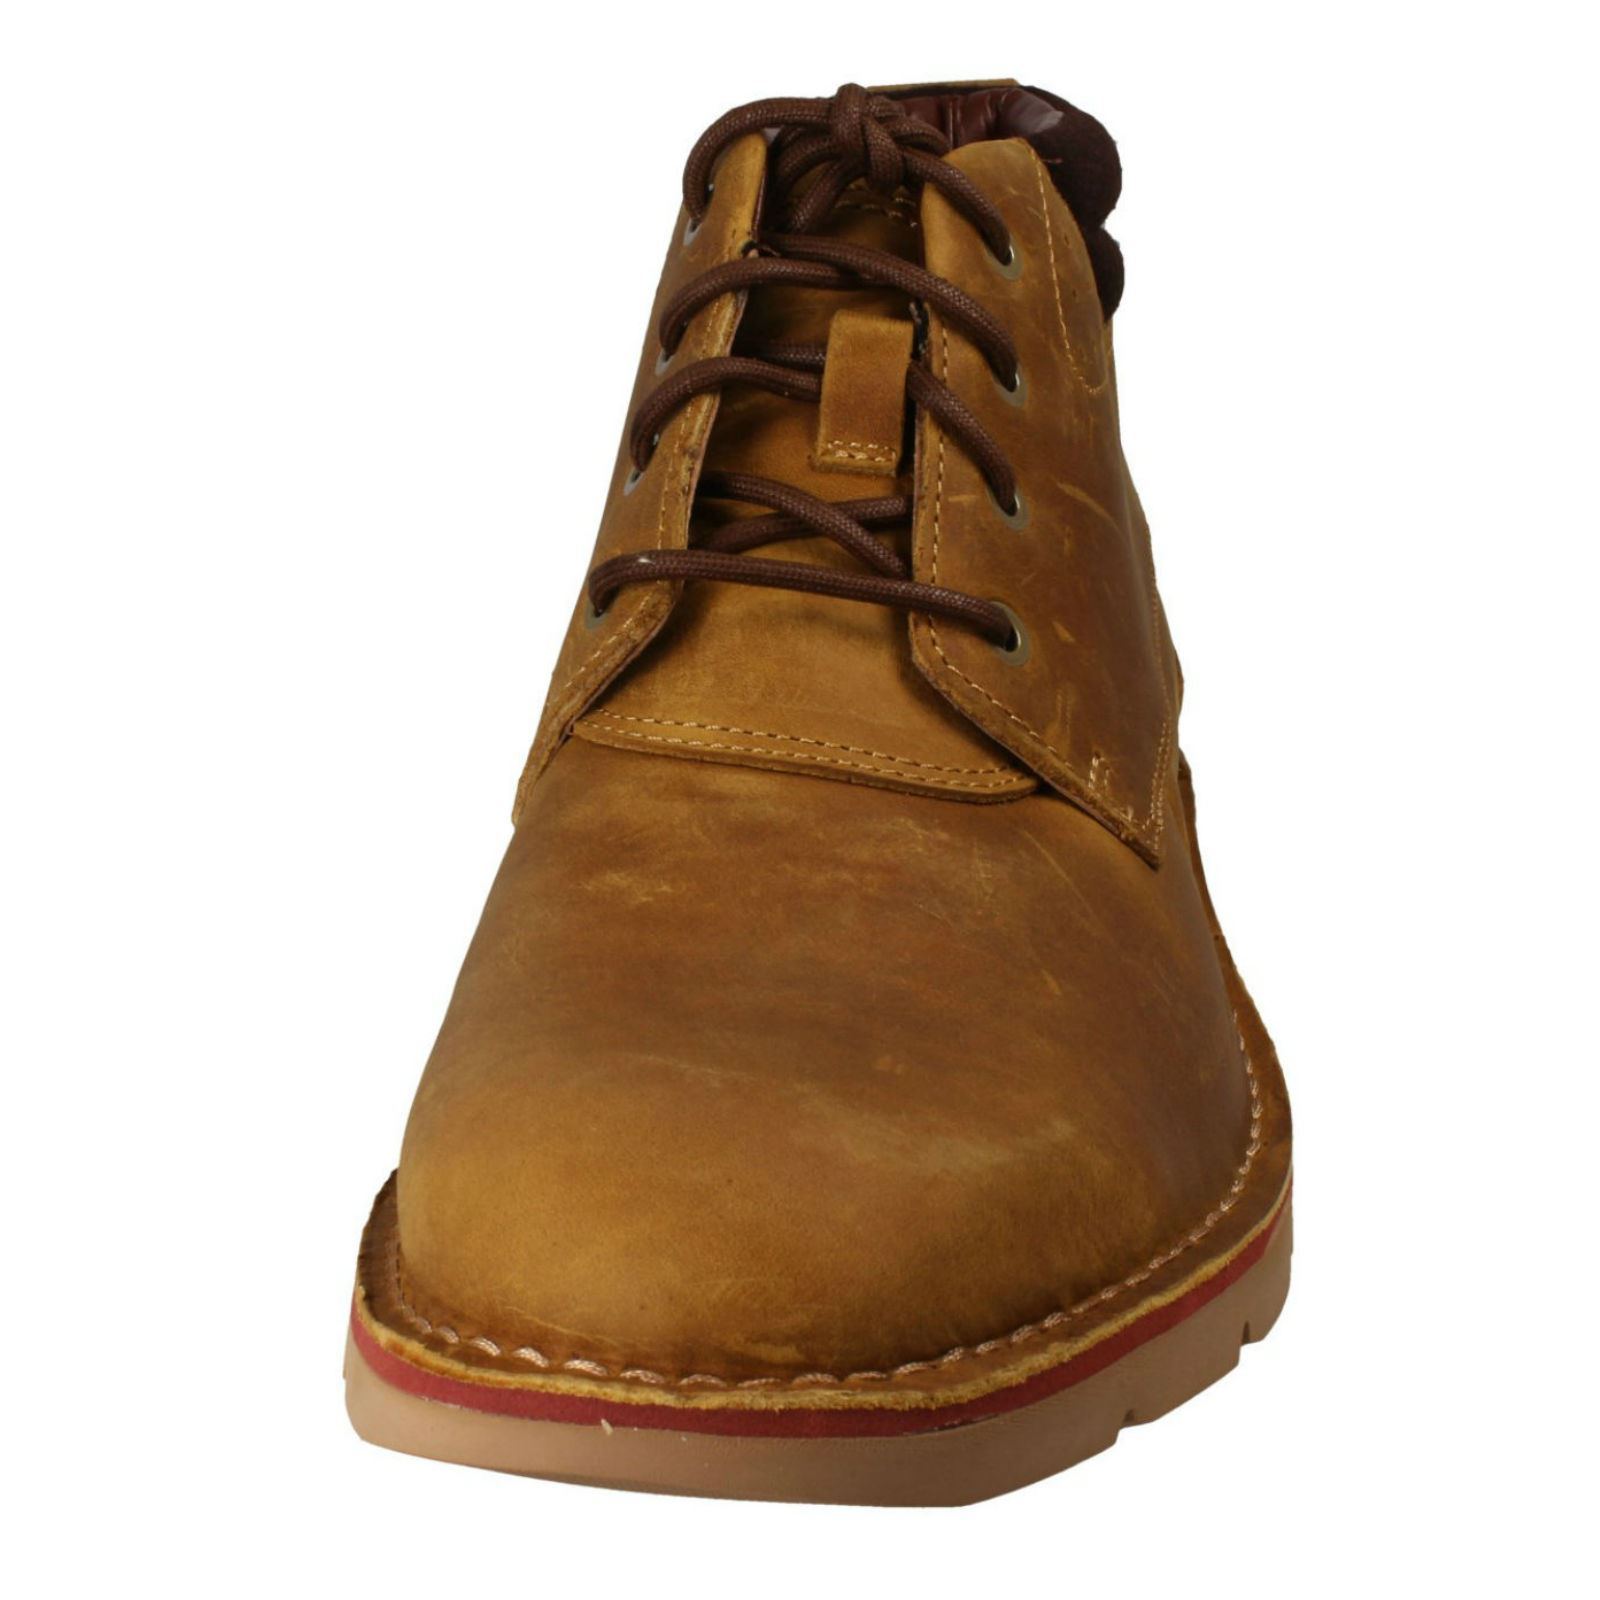 Mens-Clarks-Warm-Lined-Casual-Boots-039-Varick-Heal-039 thumbnail 18